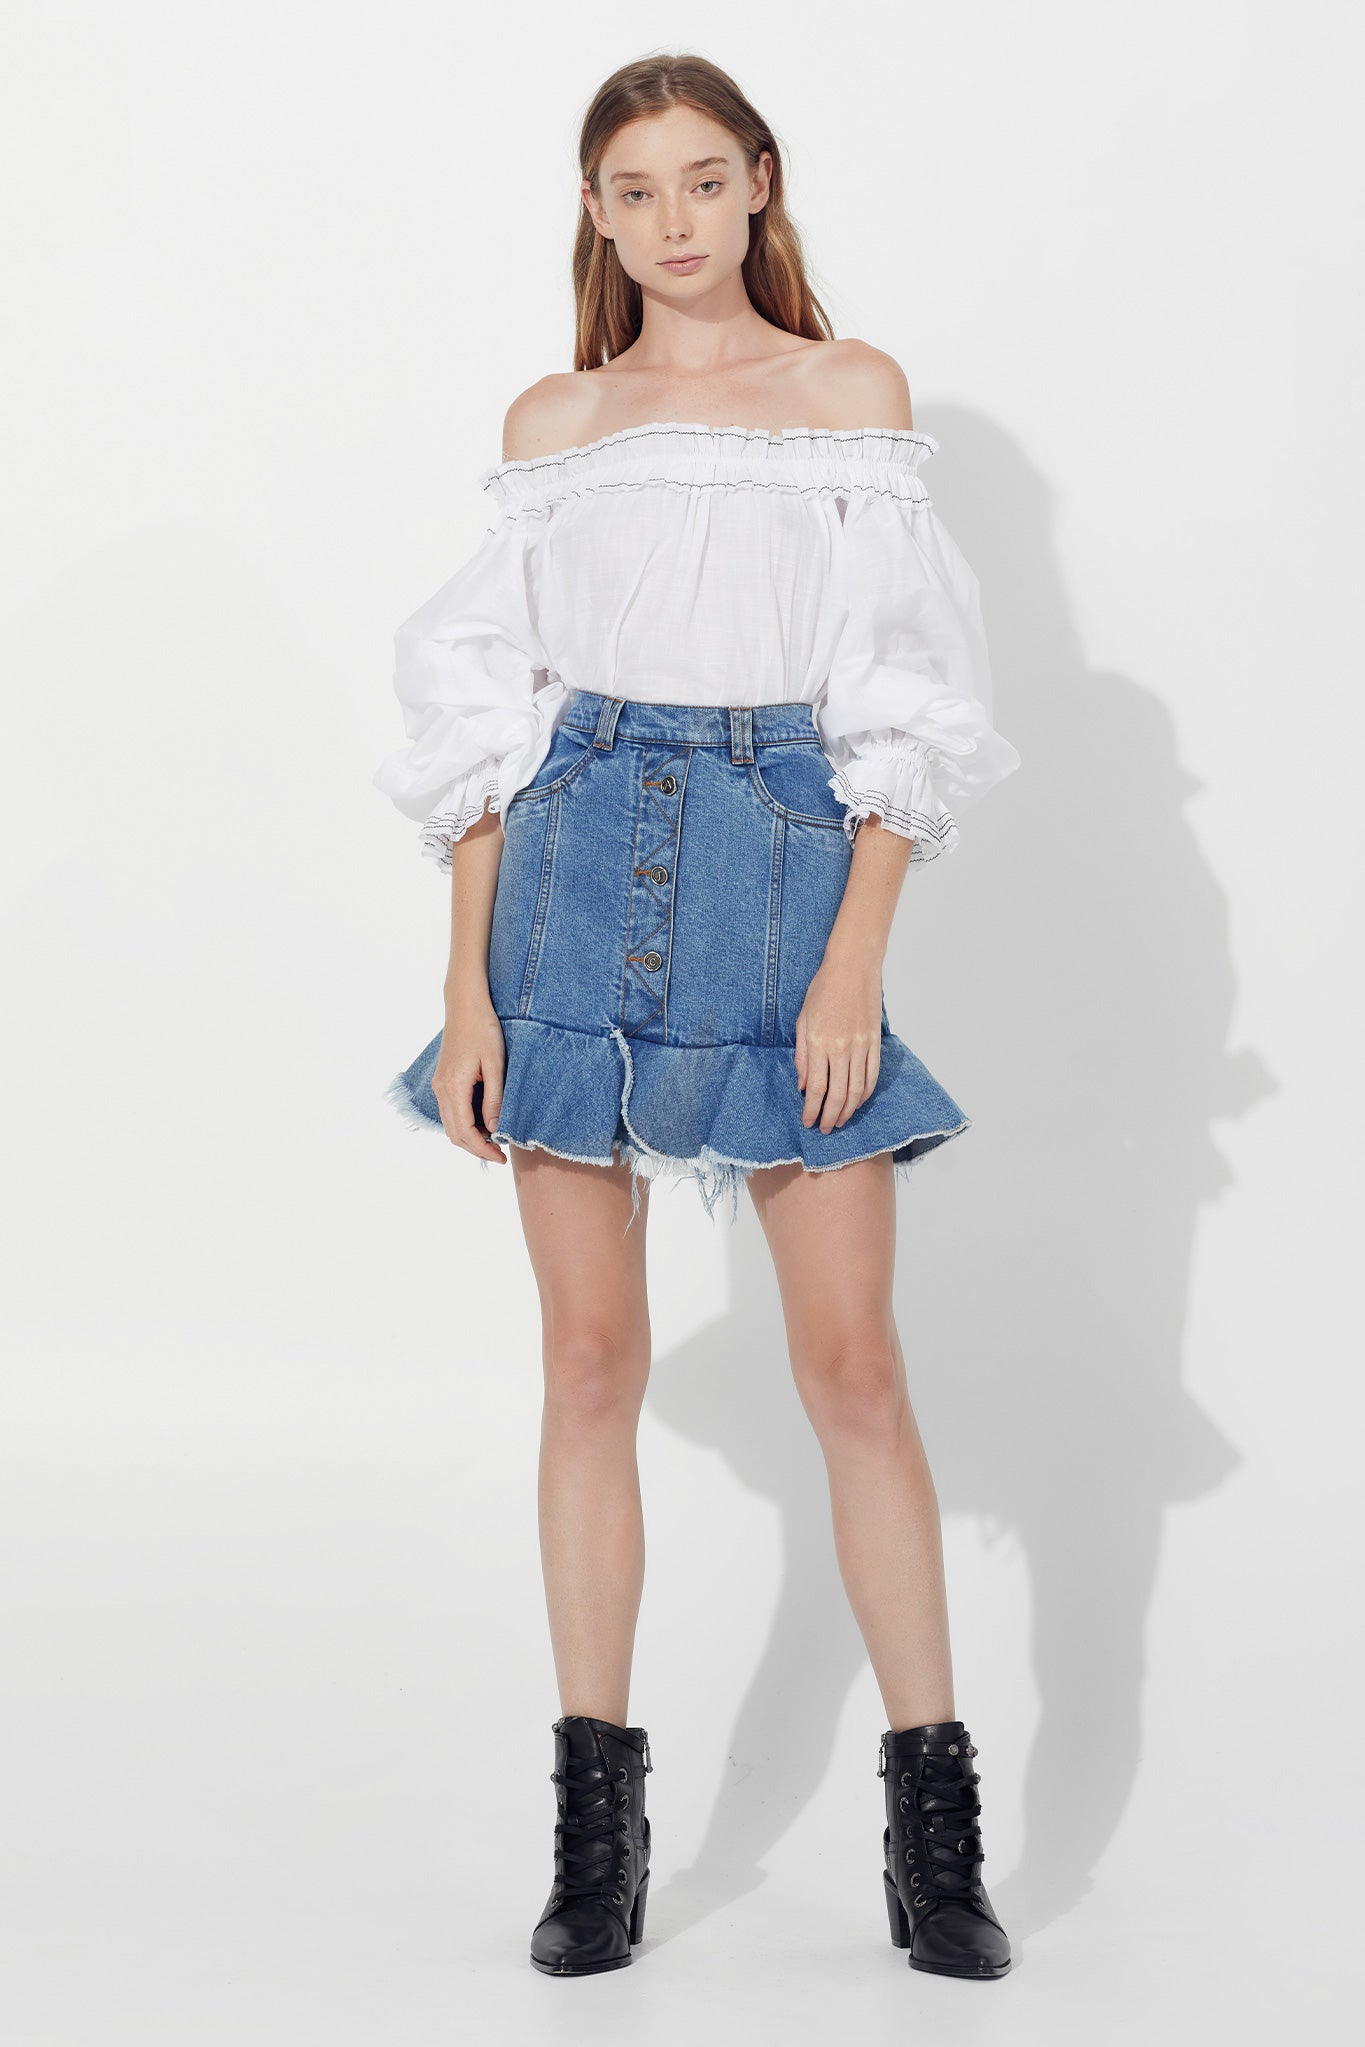 Saltwater Denim Mini Skirt Outfit View